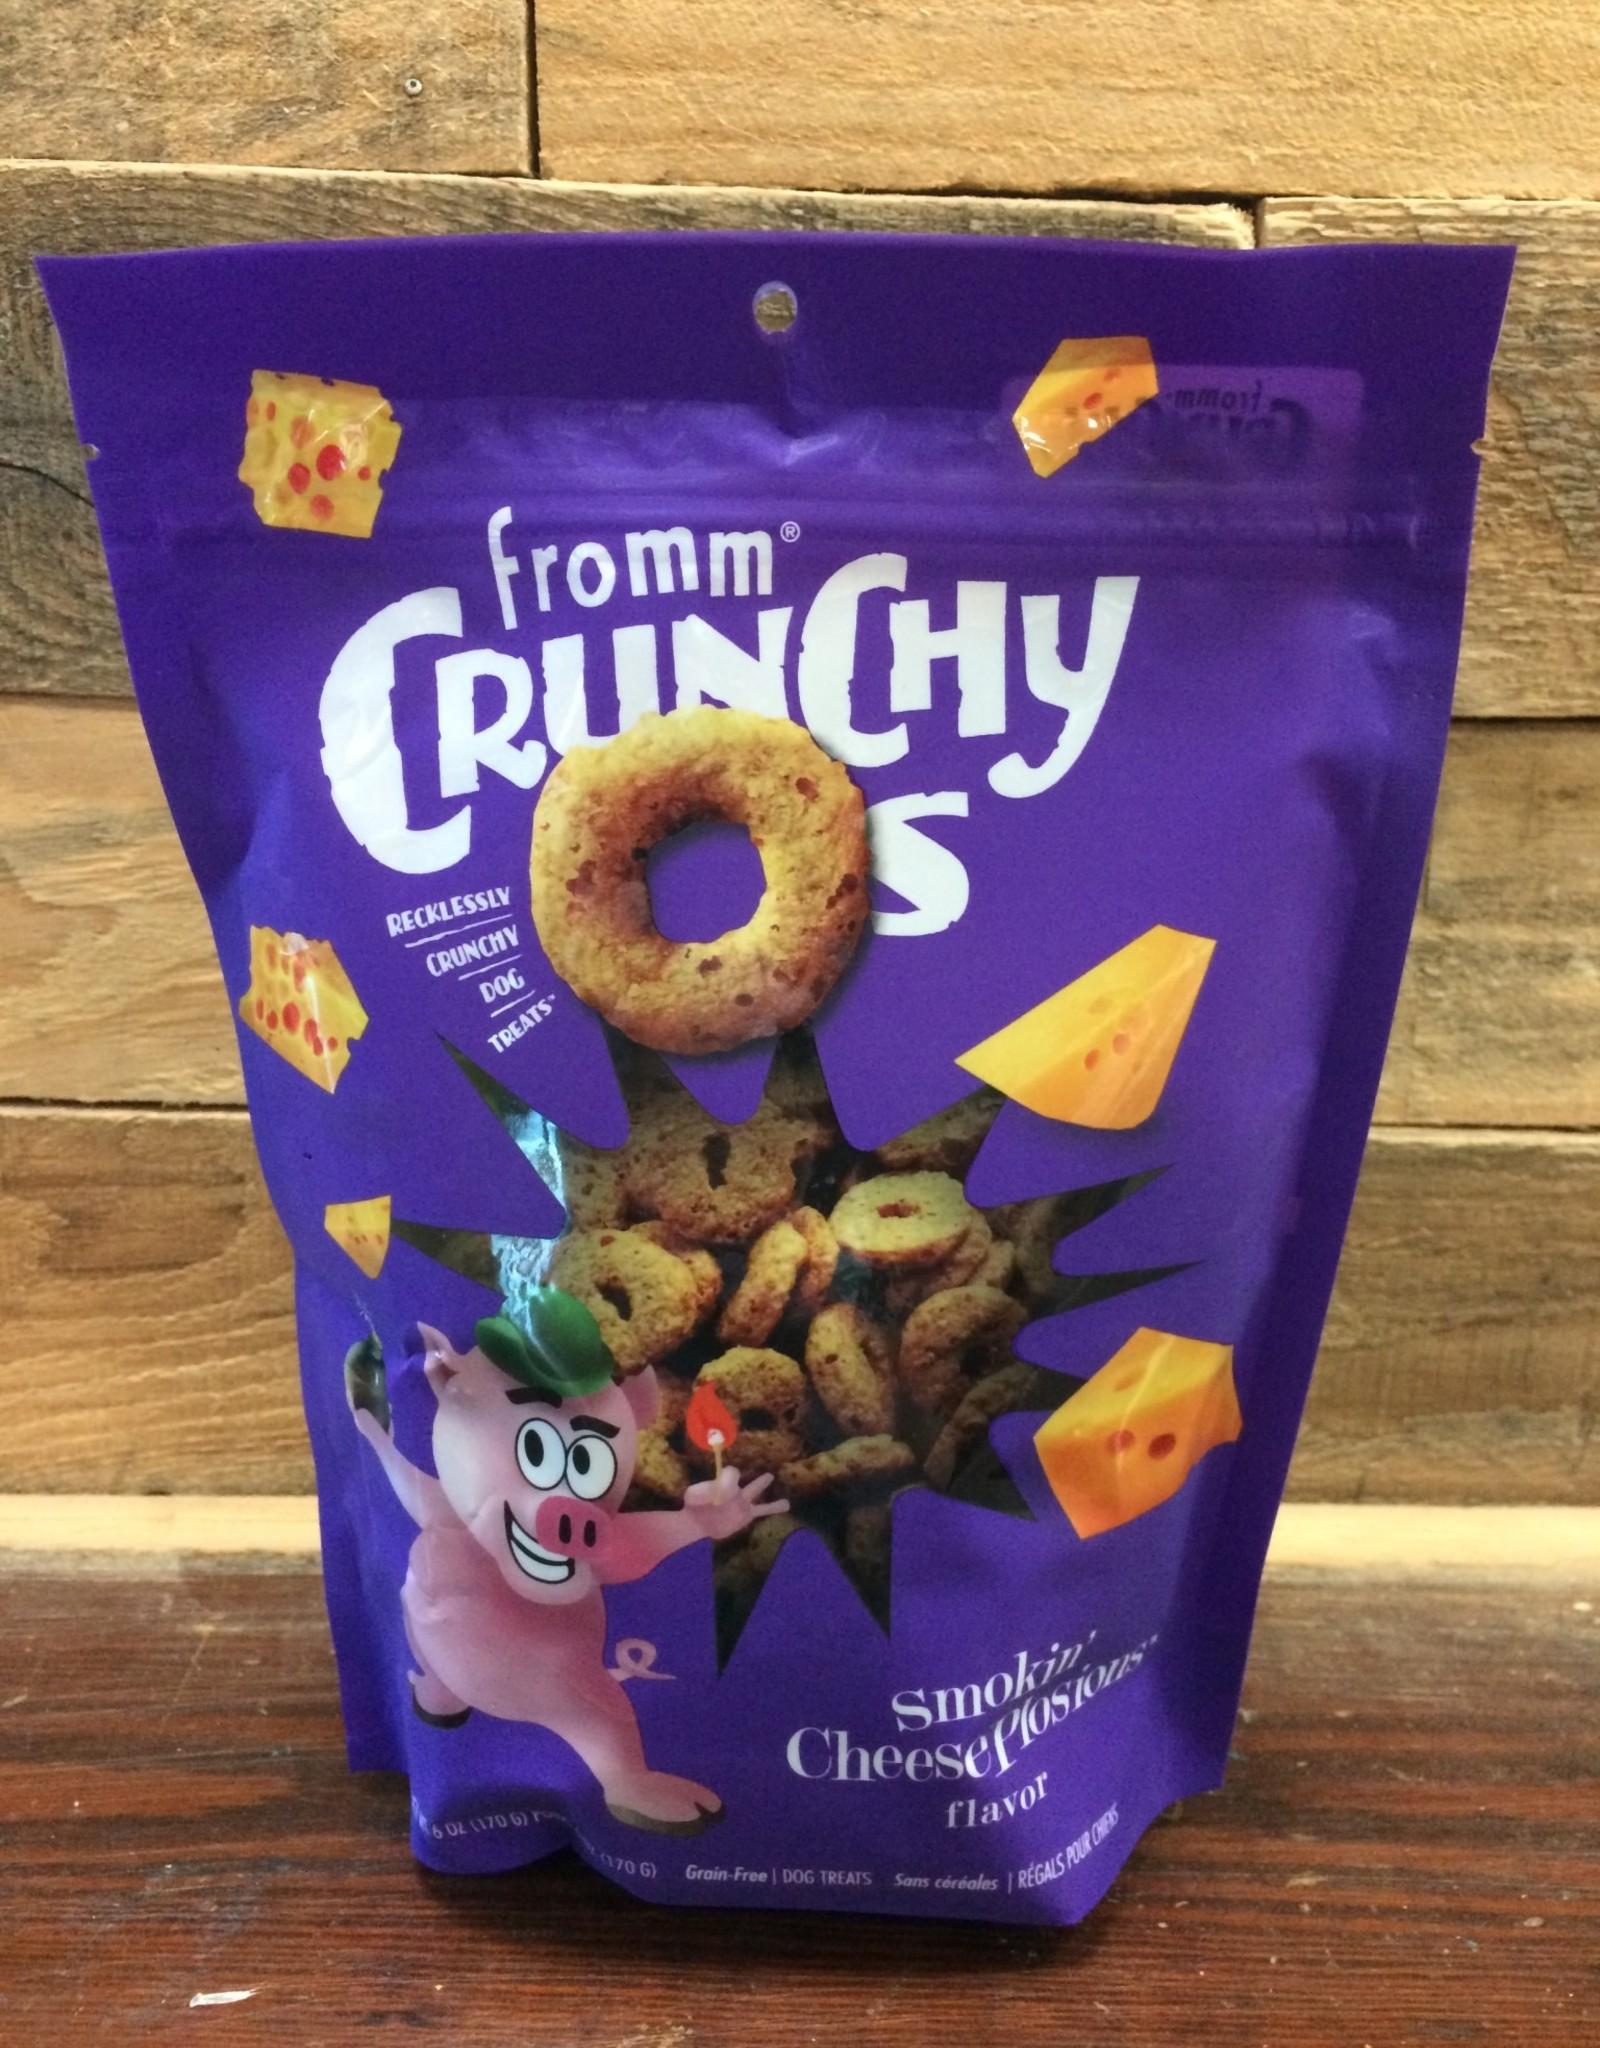 Fromm Family Foods Fromm Crunchy O's Smokin Cheeseplosions treat